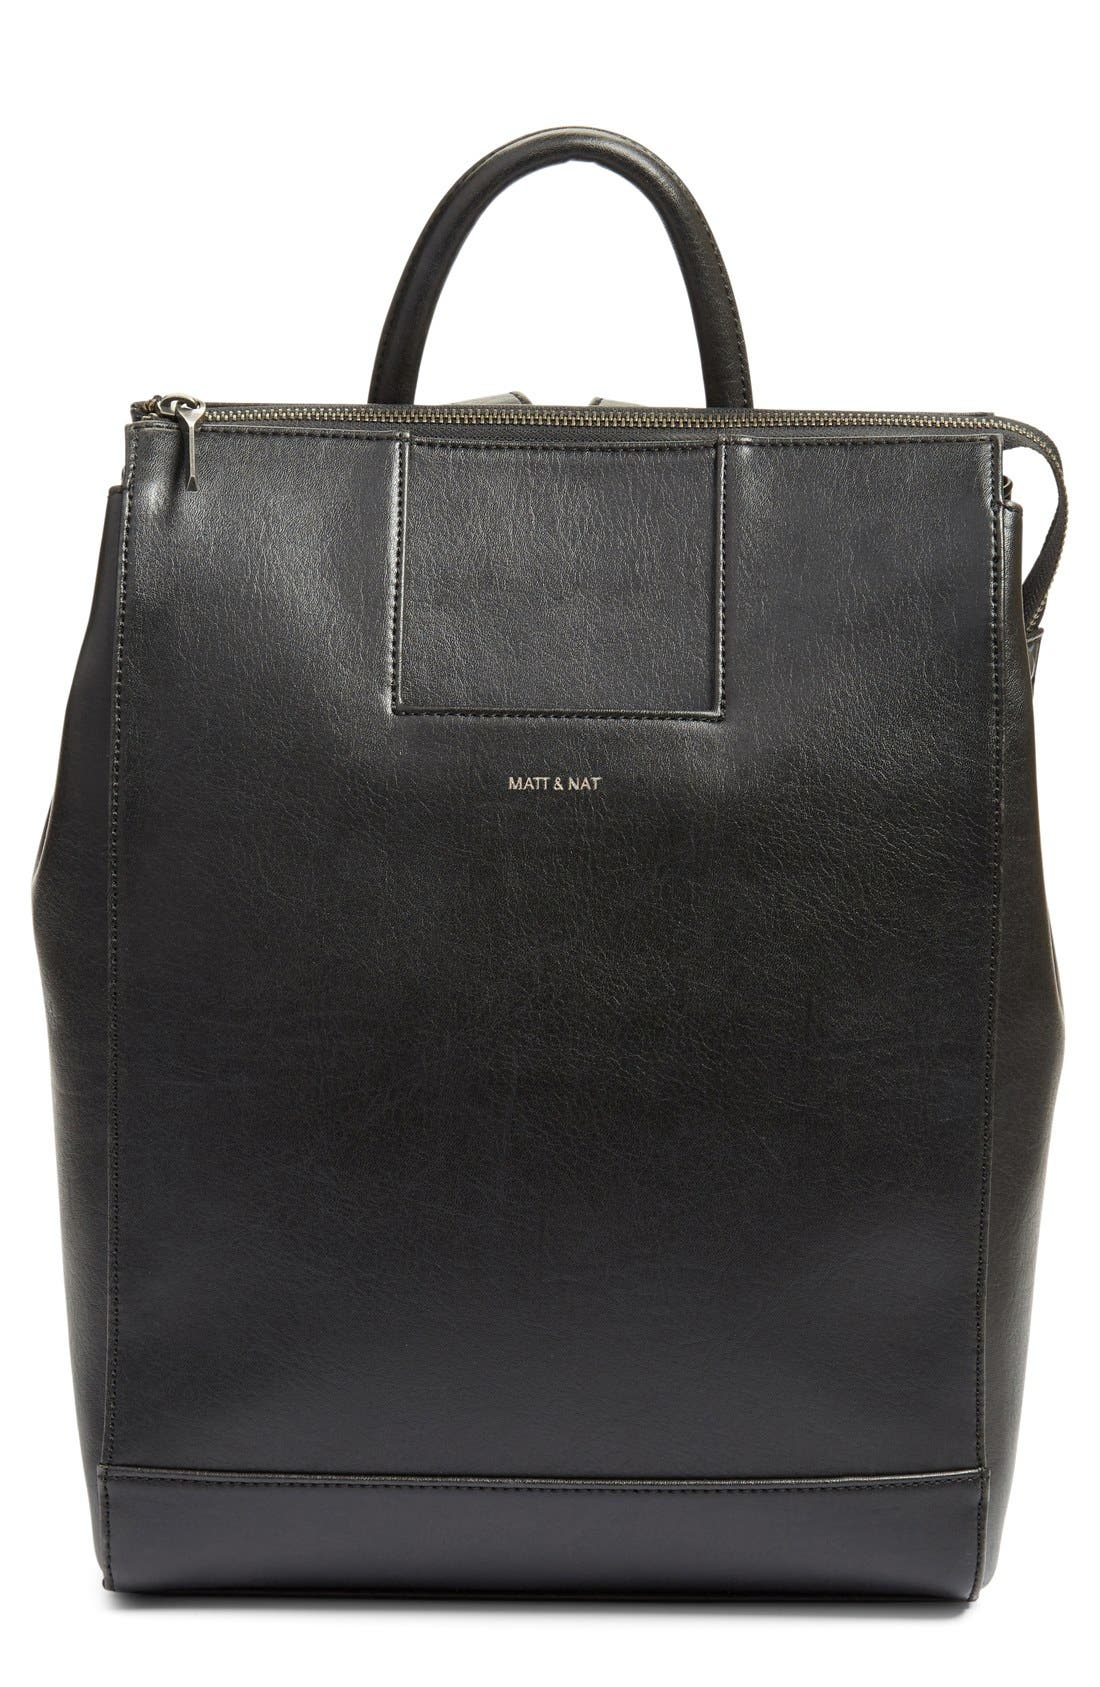 Matt & Nat 'Katherine' Faux Leather Backpack